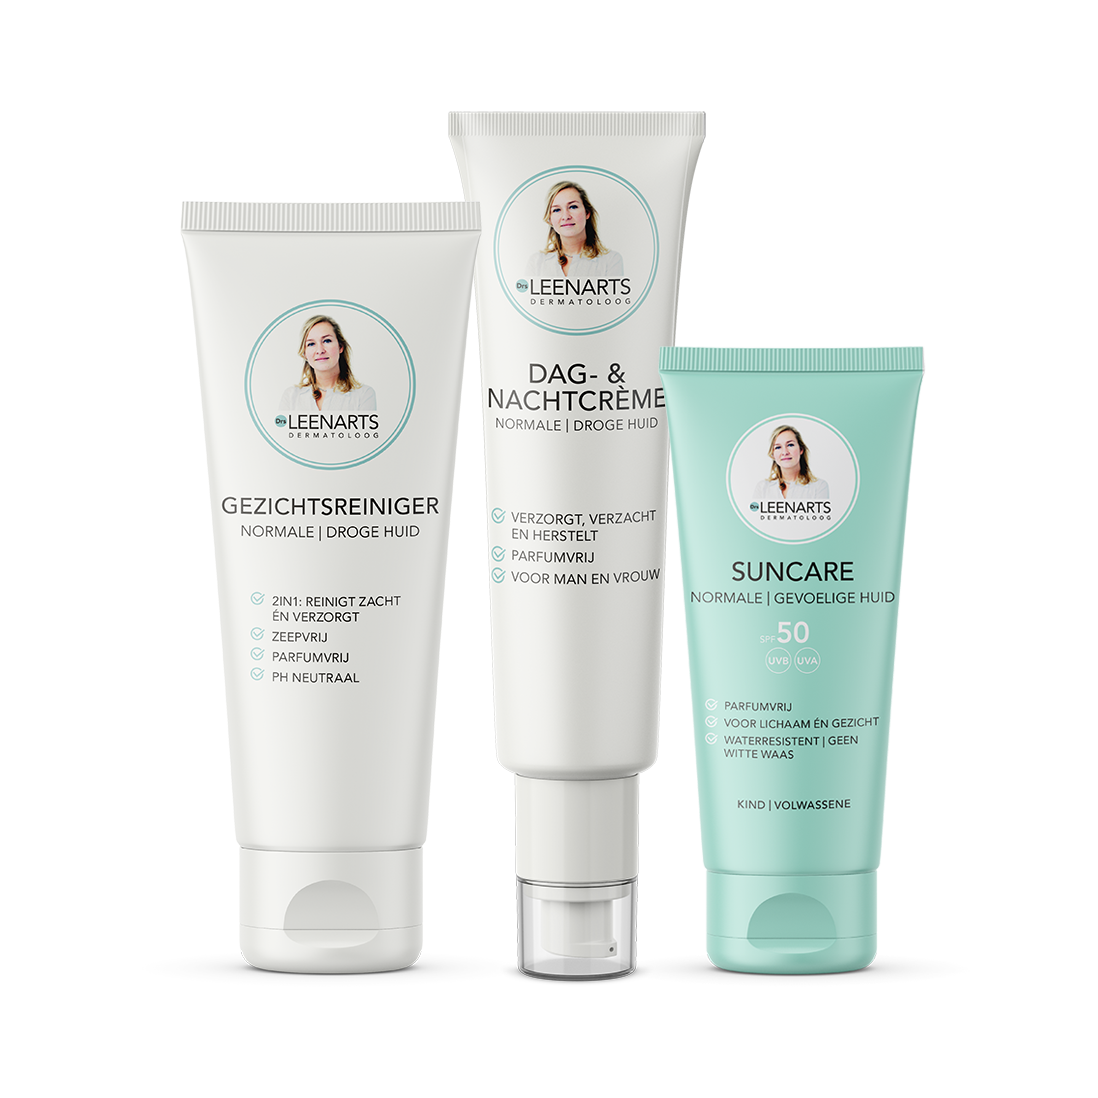 Packshot van Drs Leenarts Care and protect facecare set